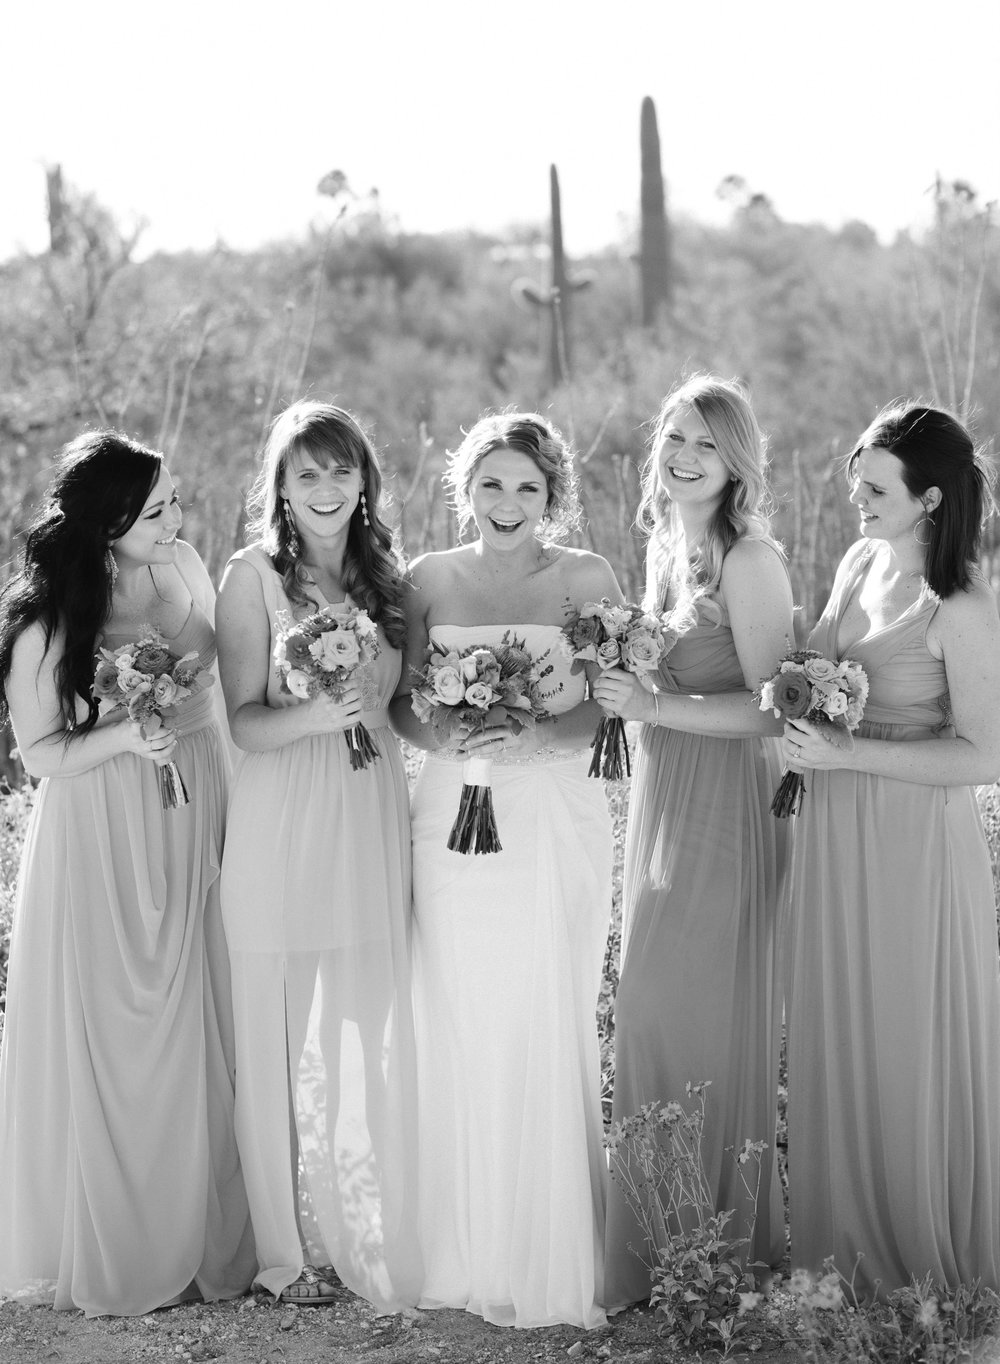 Betsy with her bridesmaids